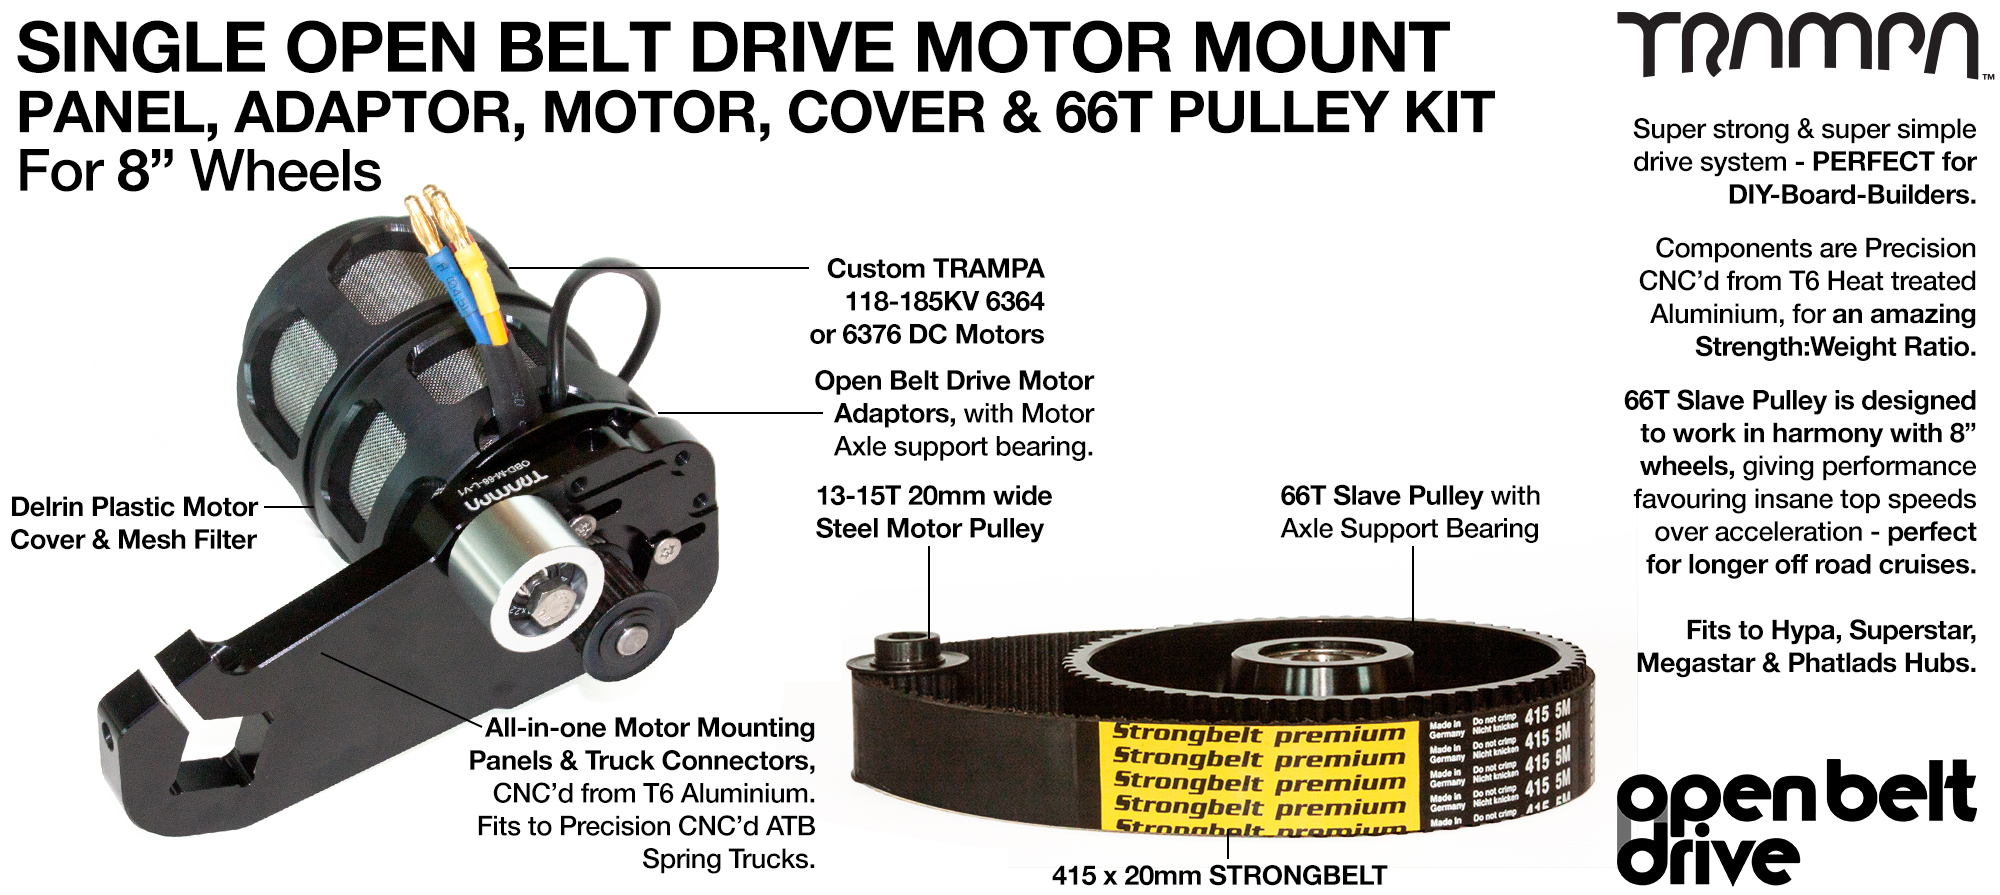 66T OBD Motor Mount with 66 tooth Pulley for 8 inch Wheels Custom TRAMPA Motor & Motor Protection Filter - SINGLE